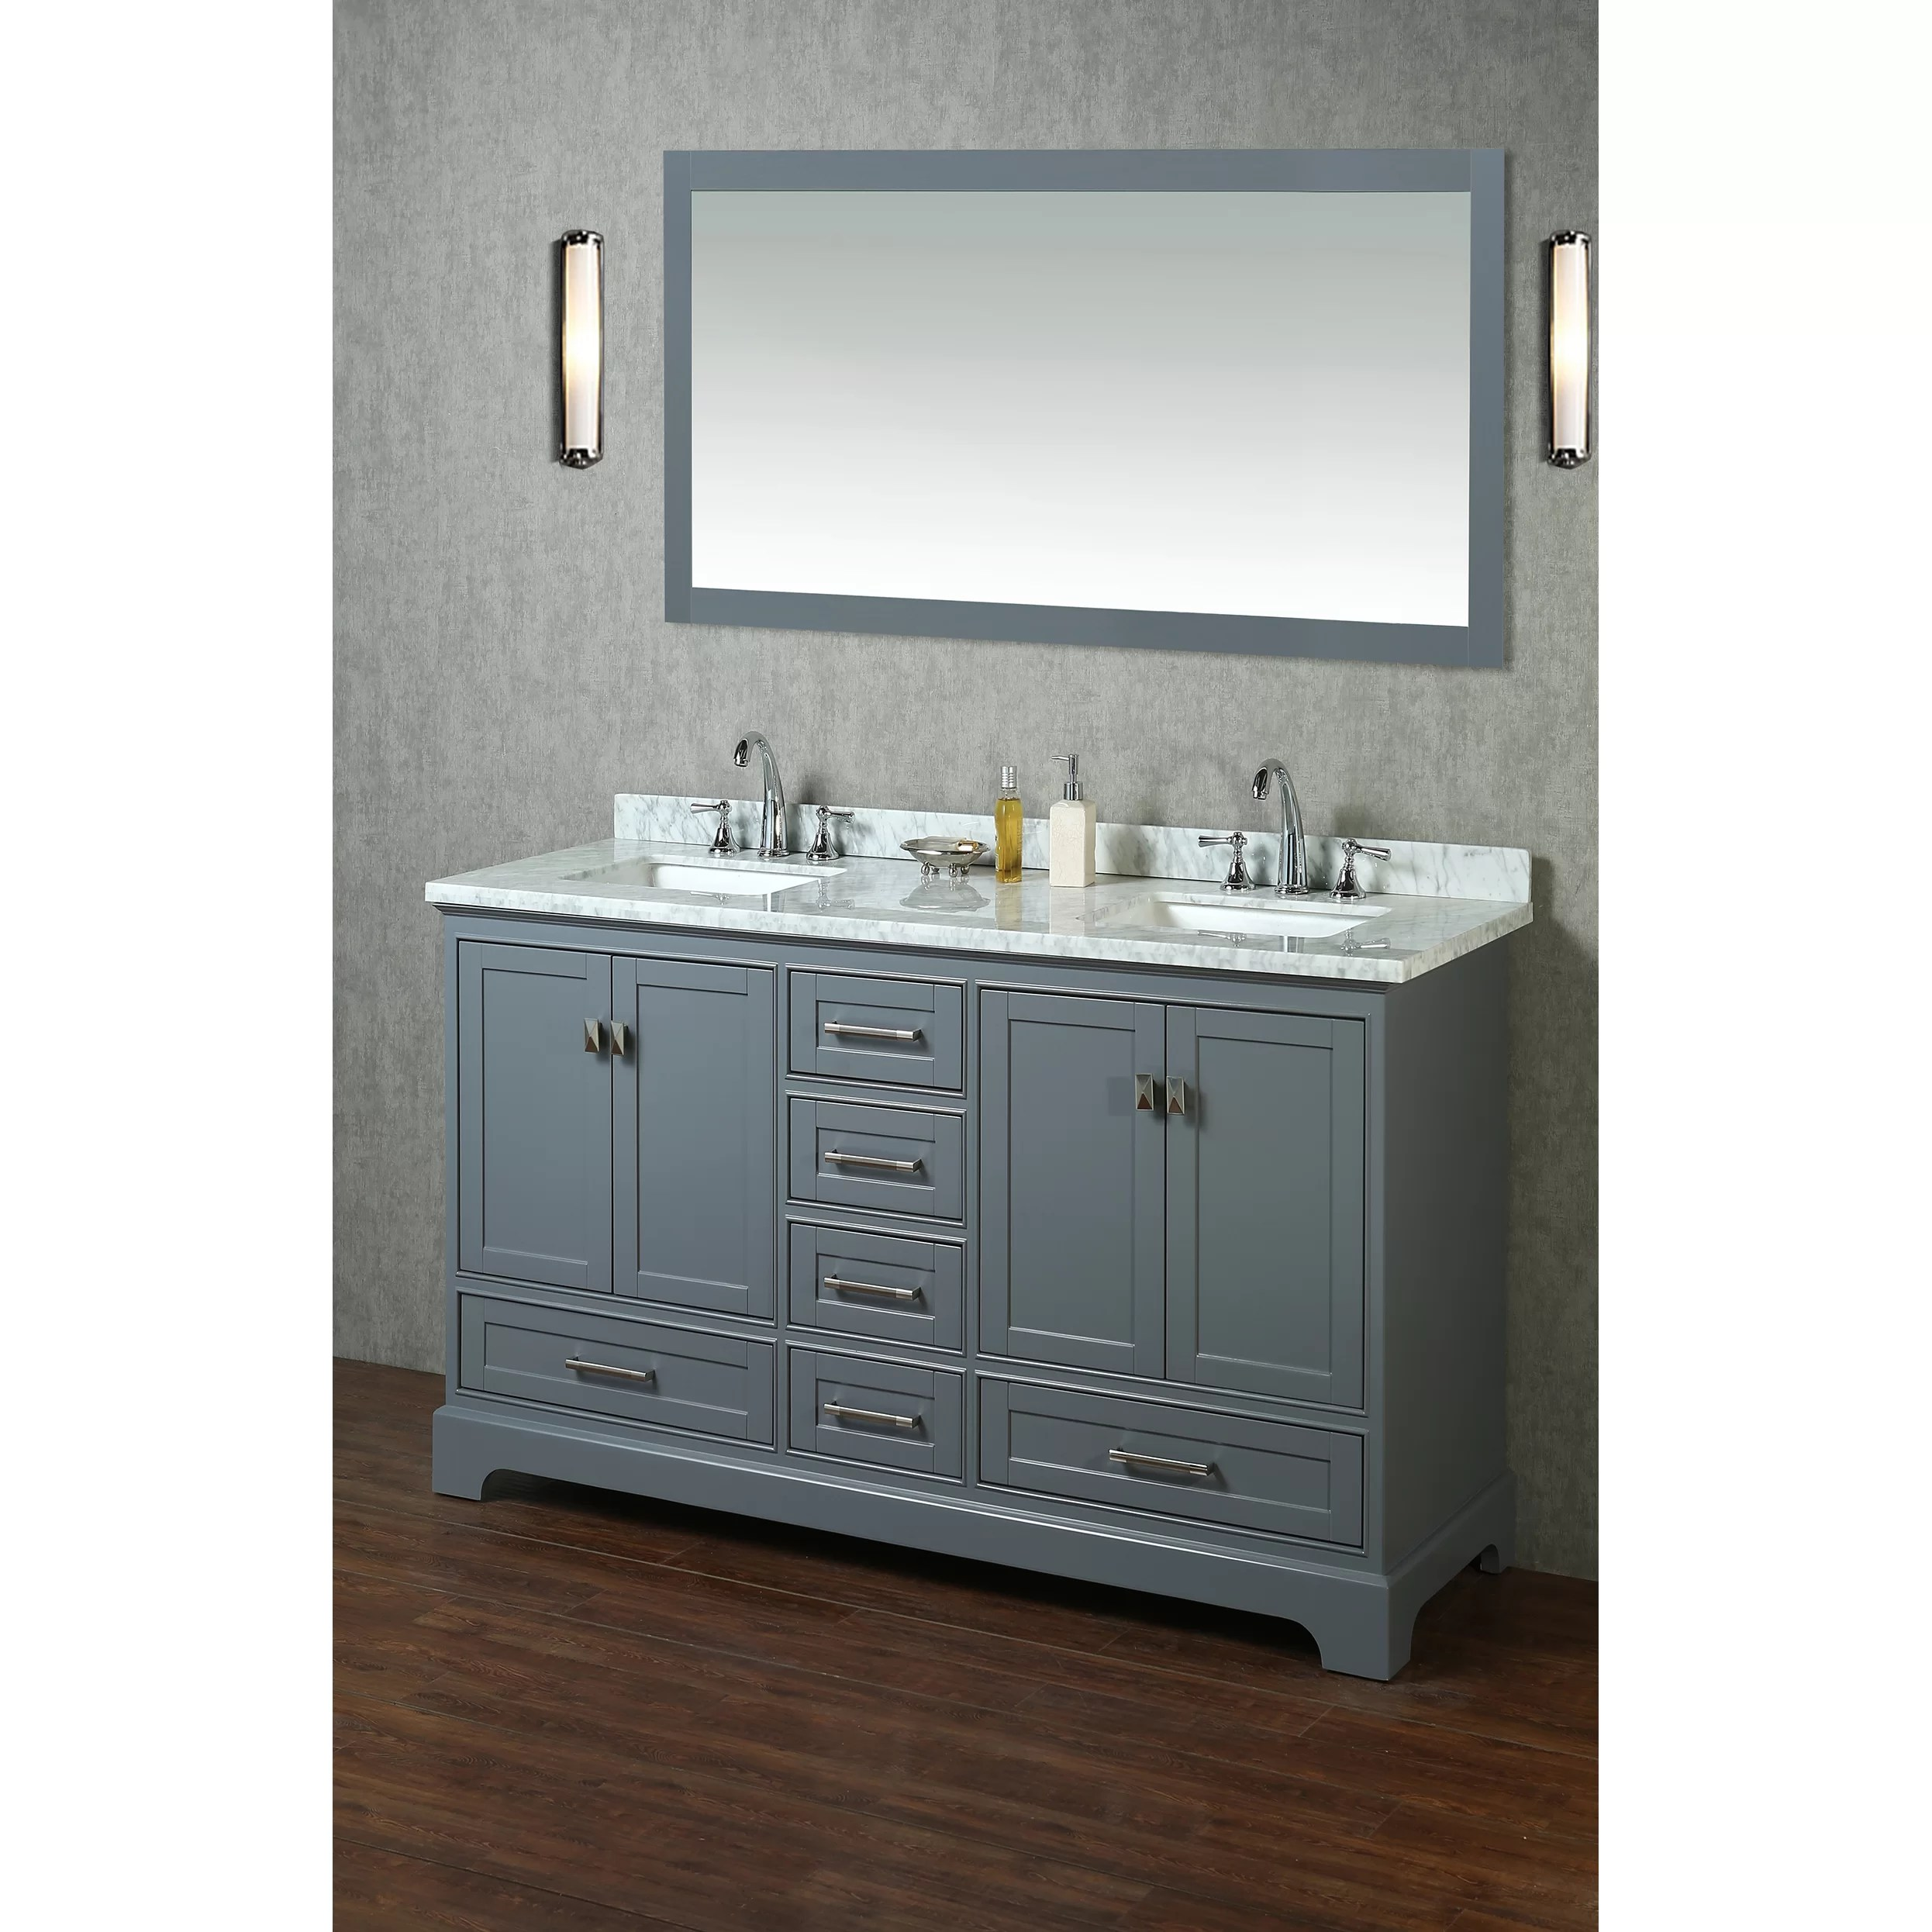 Mirrored Bathroom Vanity With Sink Dcor Design Barrington 60 Quot Double Sink Bathroom Vanity Set